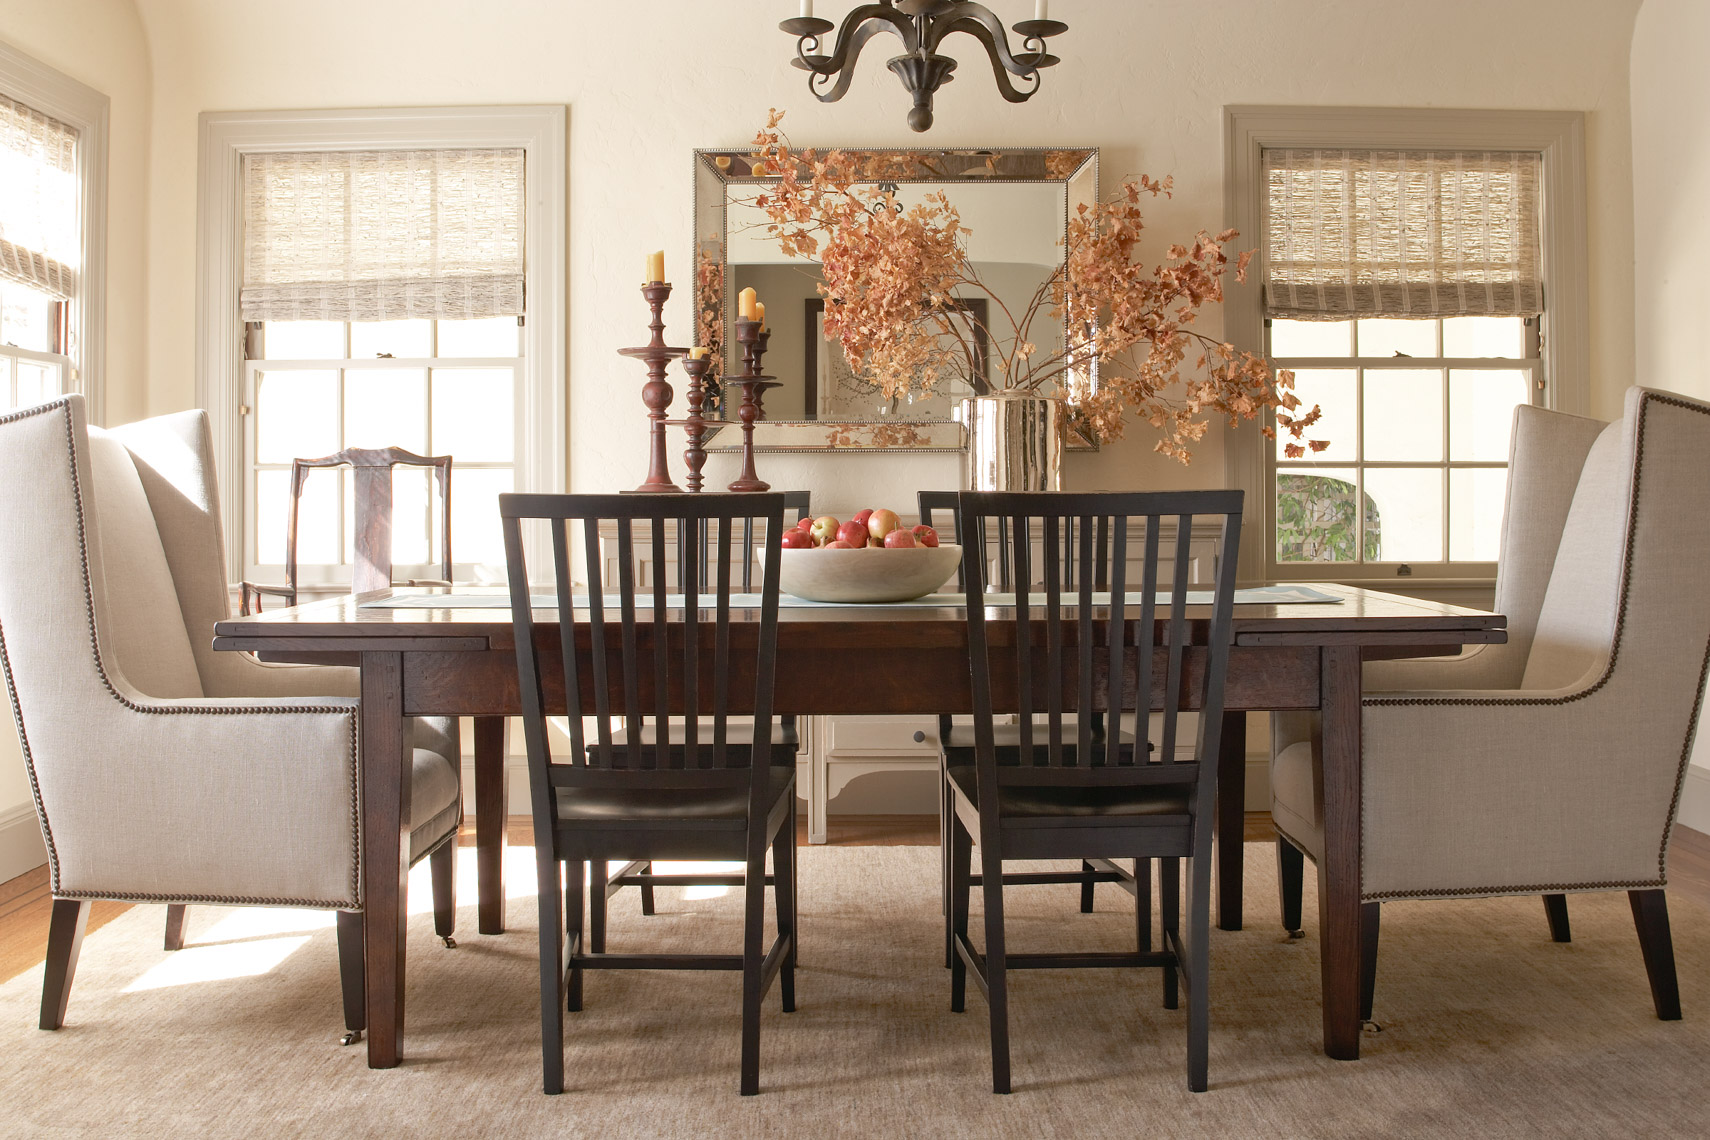 wooden dining table with 2 grey armchairs and black dinner chairs